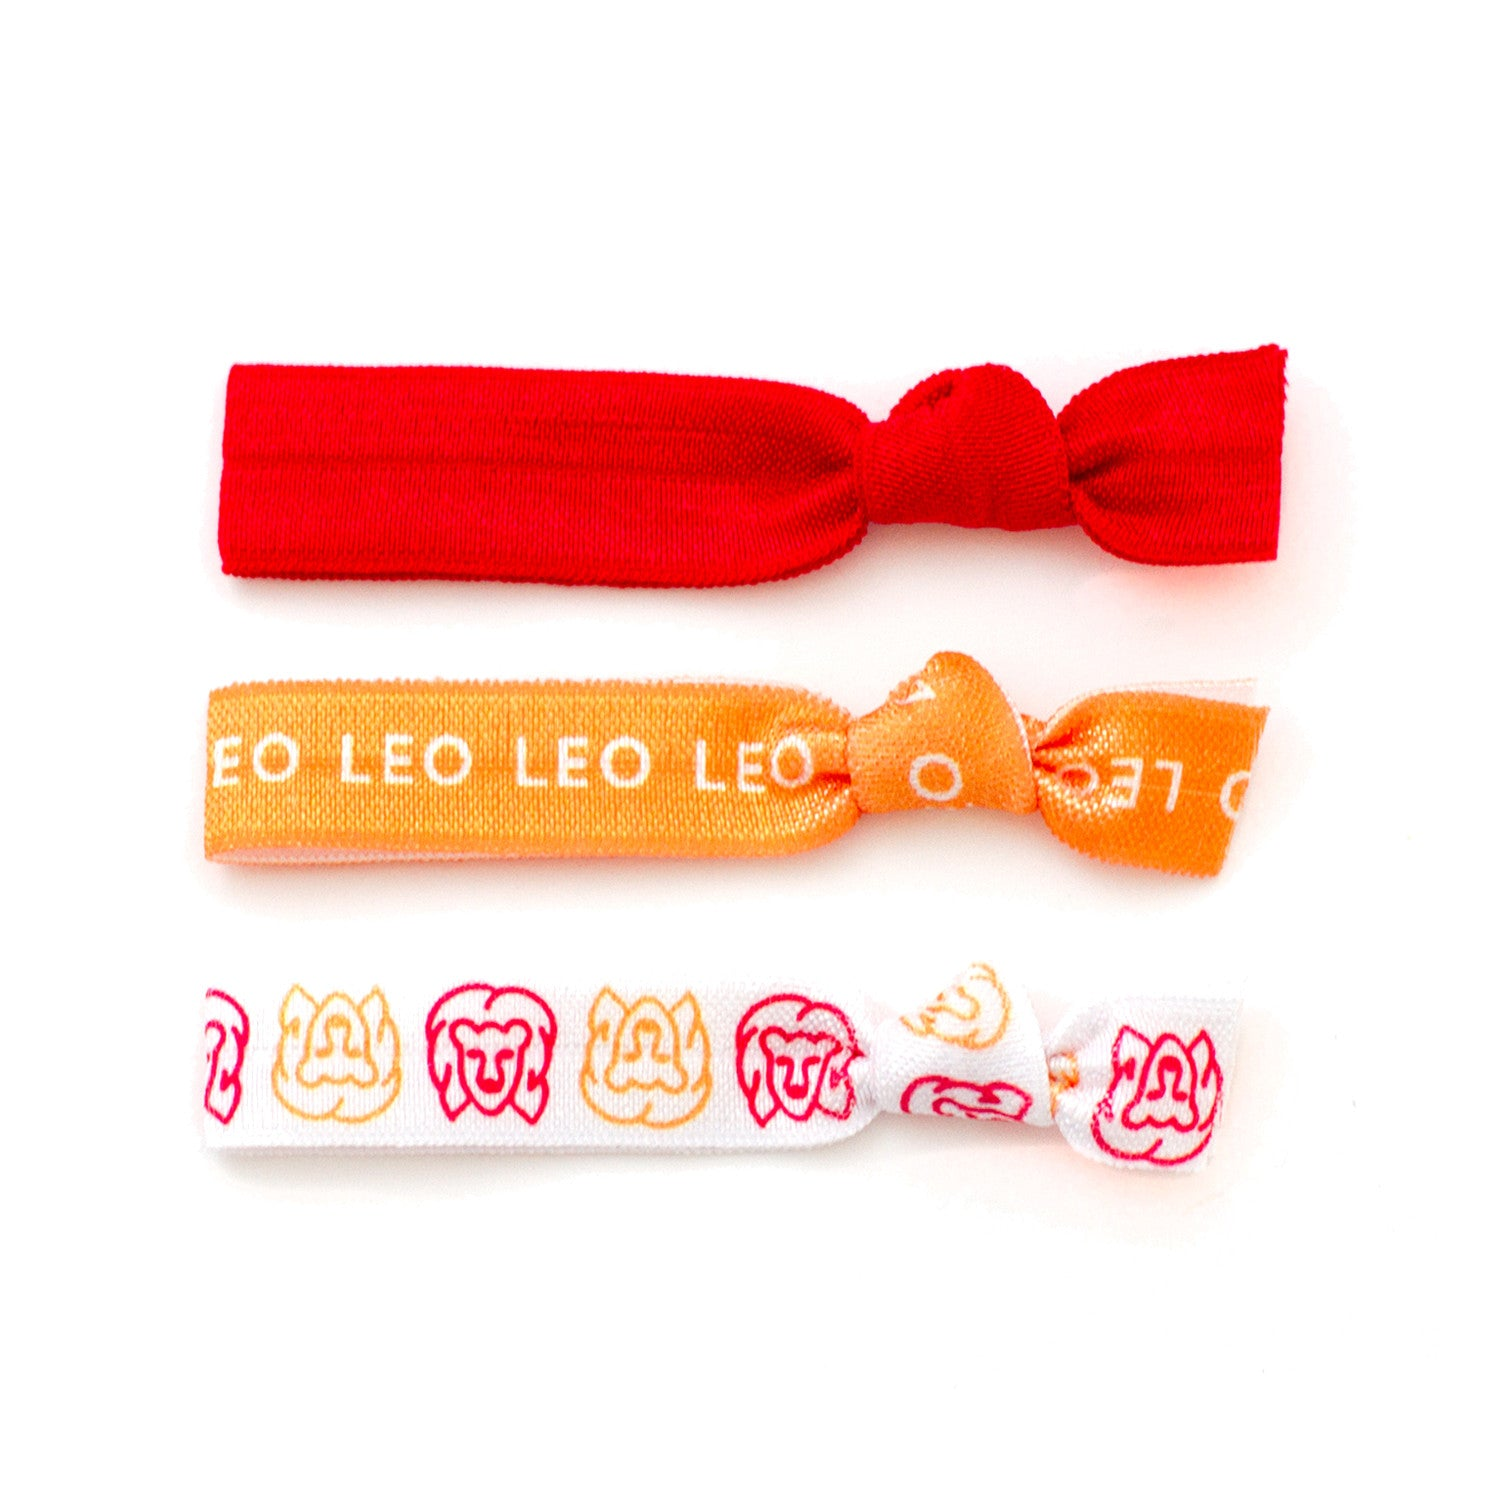 Leo Ponytail Holders Hair Ties